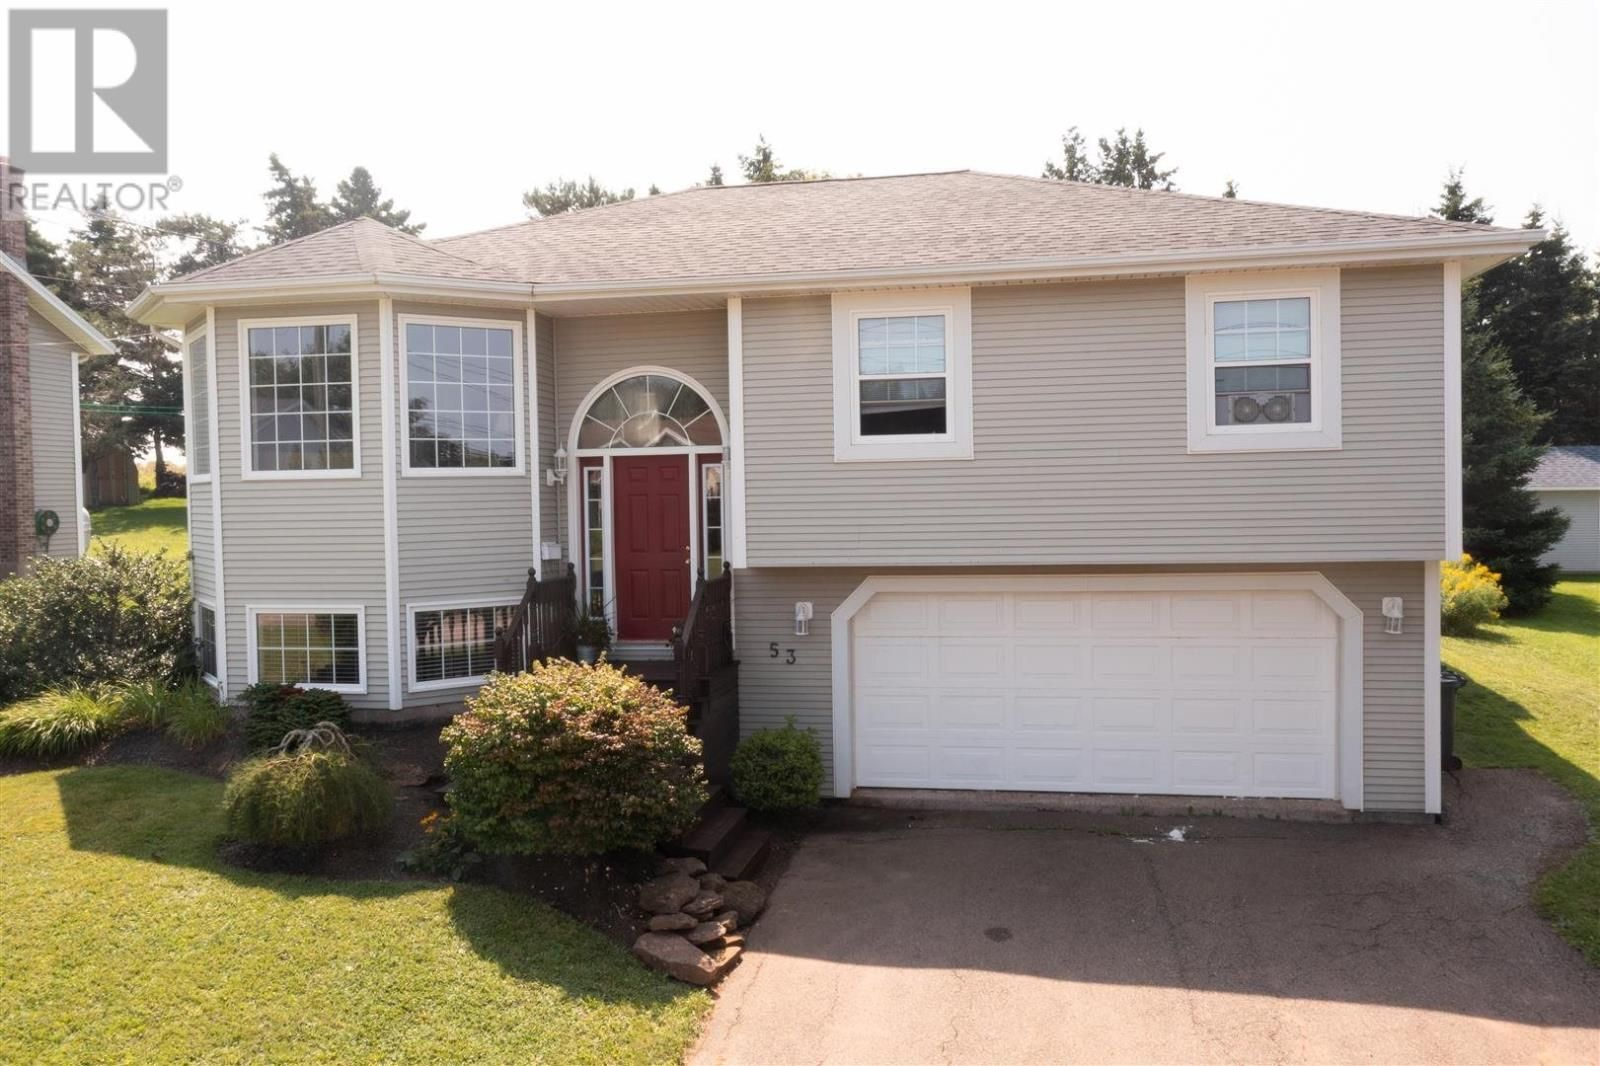 Main Photo: 53 Millennium Drive in Stratford: House for sale : MLS®# 202121074